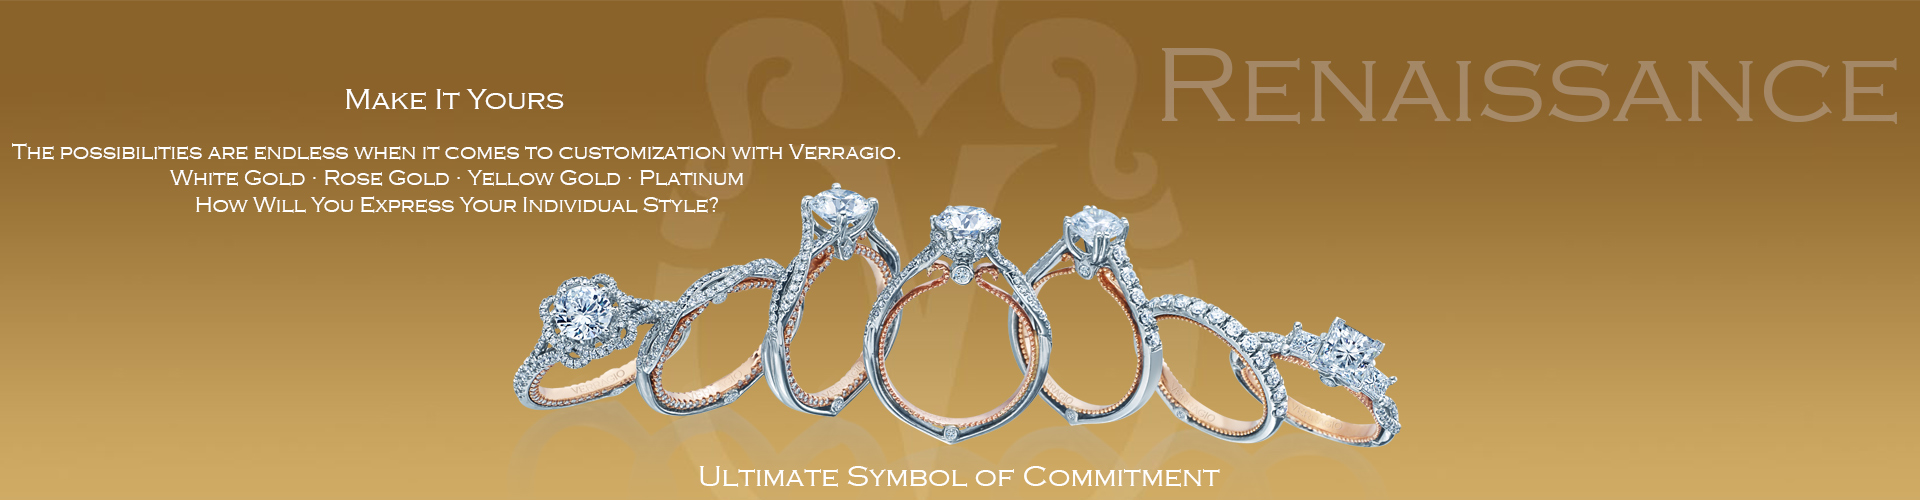 of into era the this details farber victorian style moving continued engagement reformation renaissance rings rhsh karat before although century tovi enlightenment stunning tradition